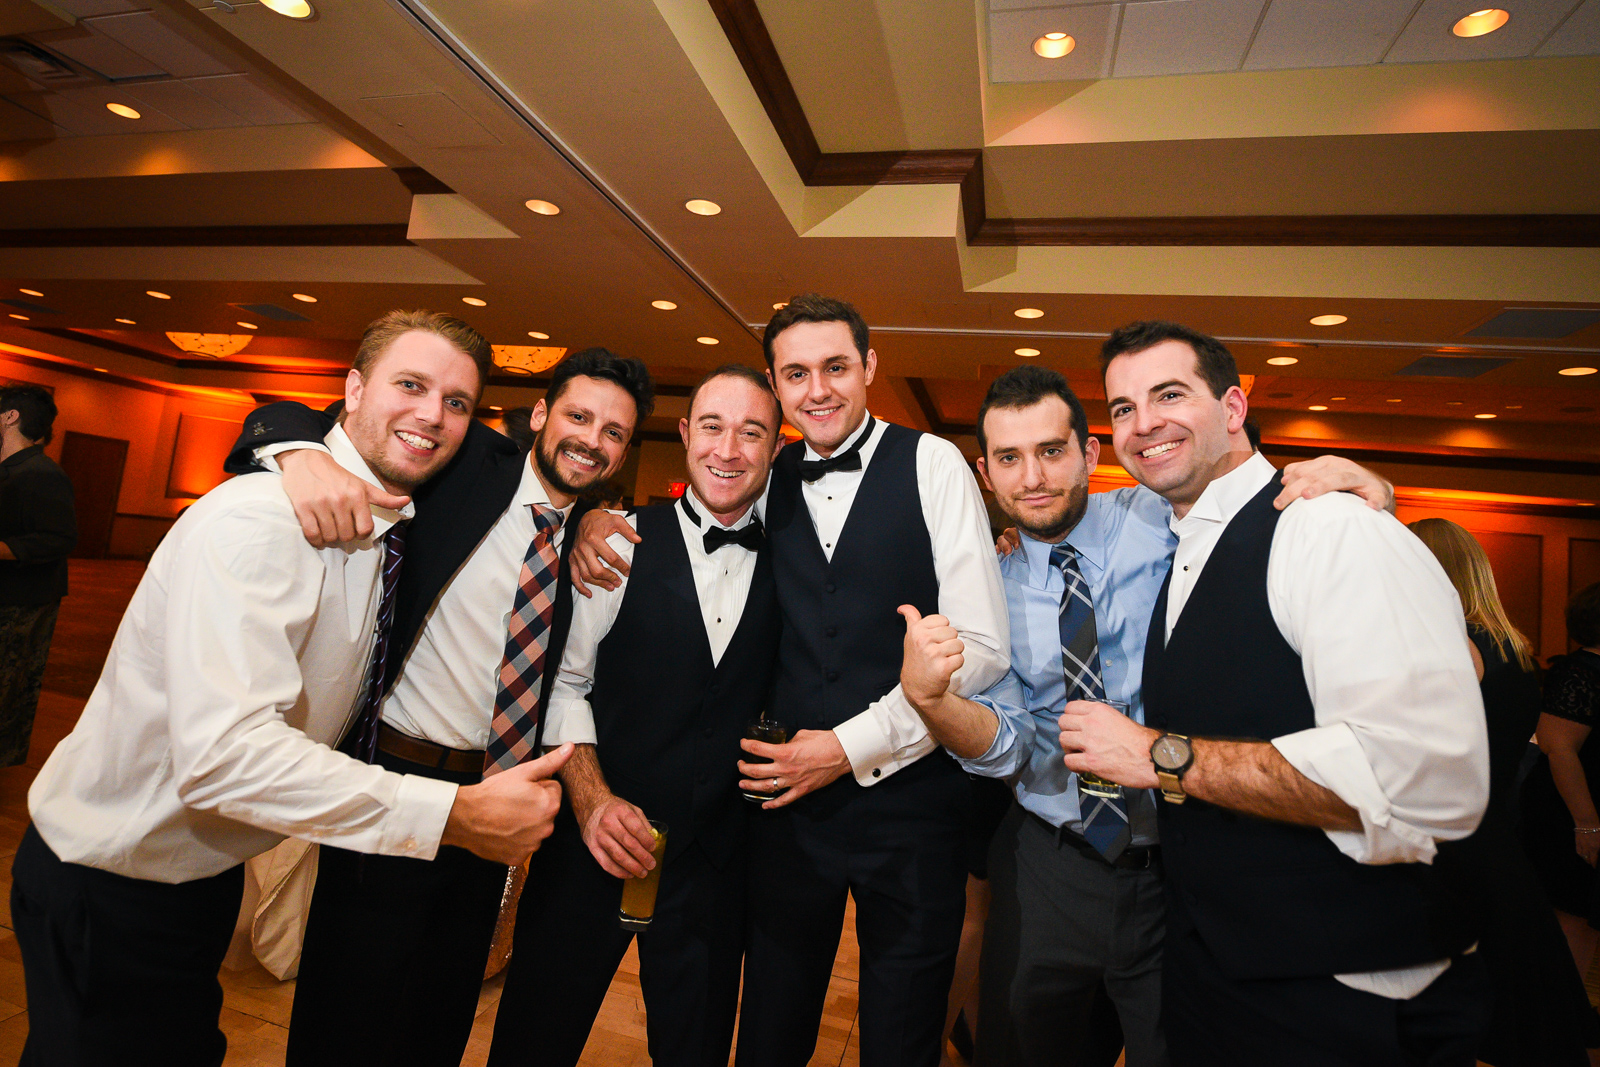 scranton-hilton-wedding-photographer-steven-serge-northeast-pa--74.jpg